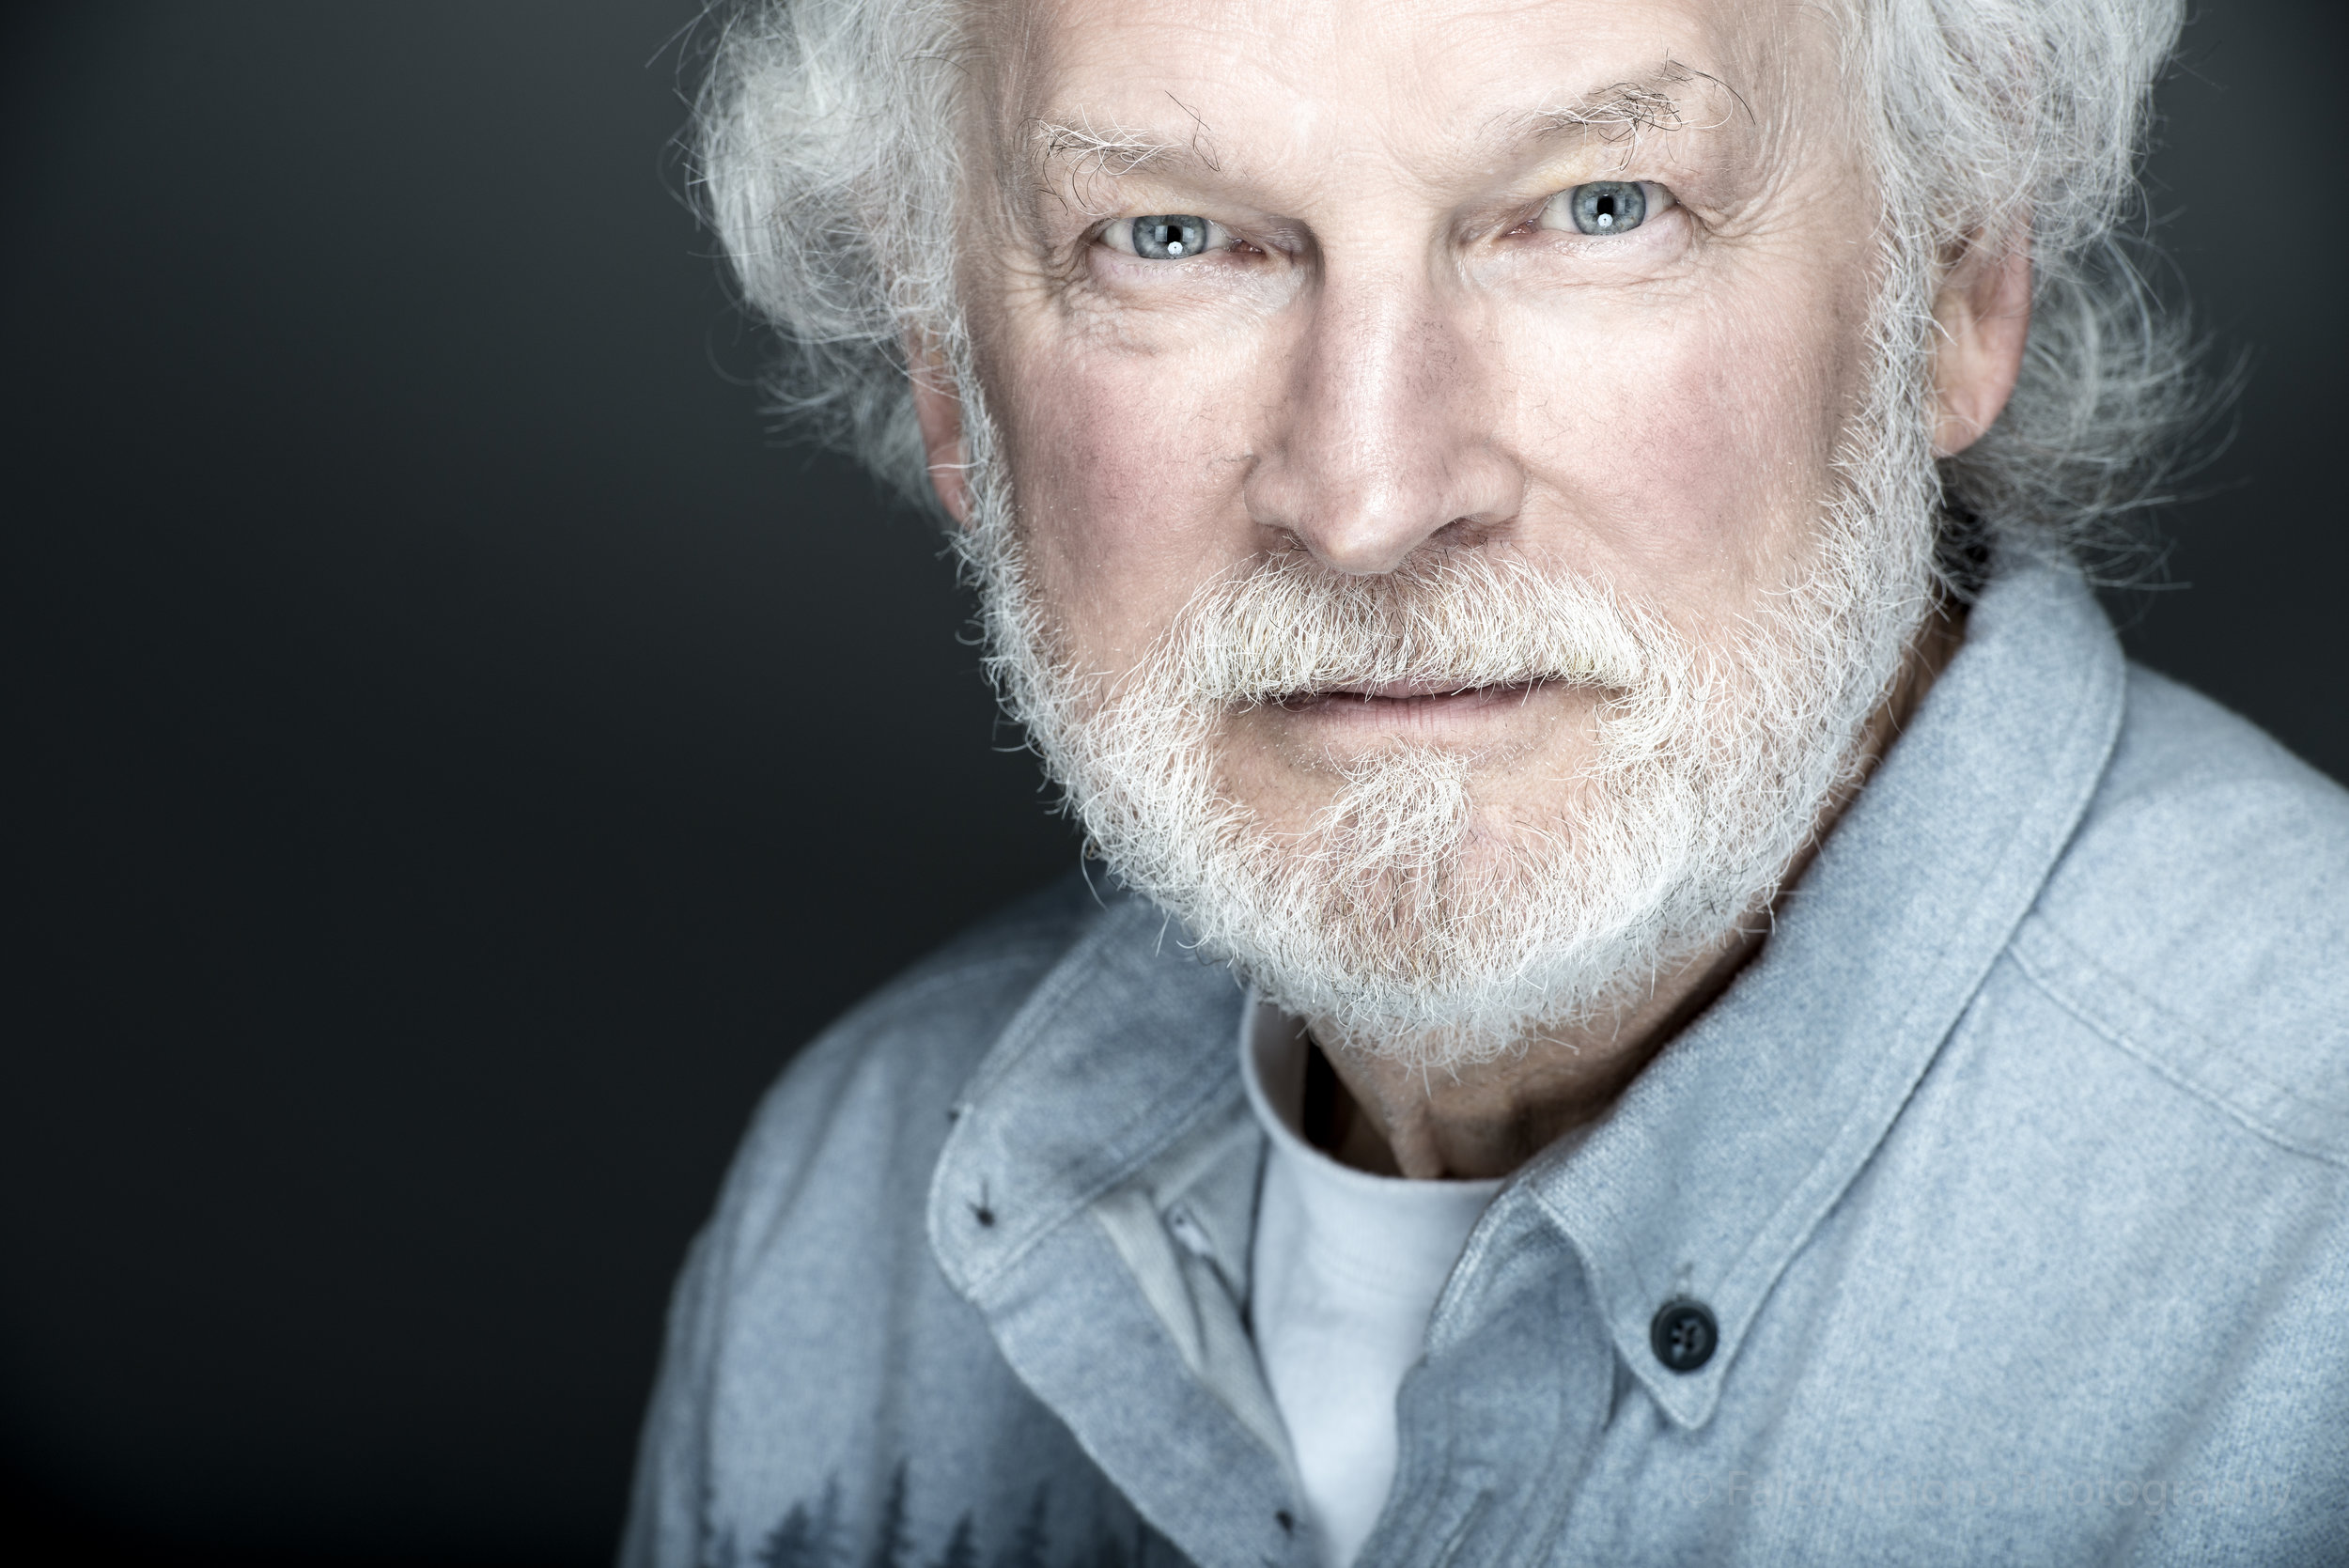 200 mm Headshot of my Friend Larry - Look at the difference and how much more flatering this is!